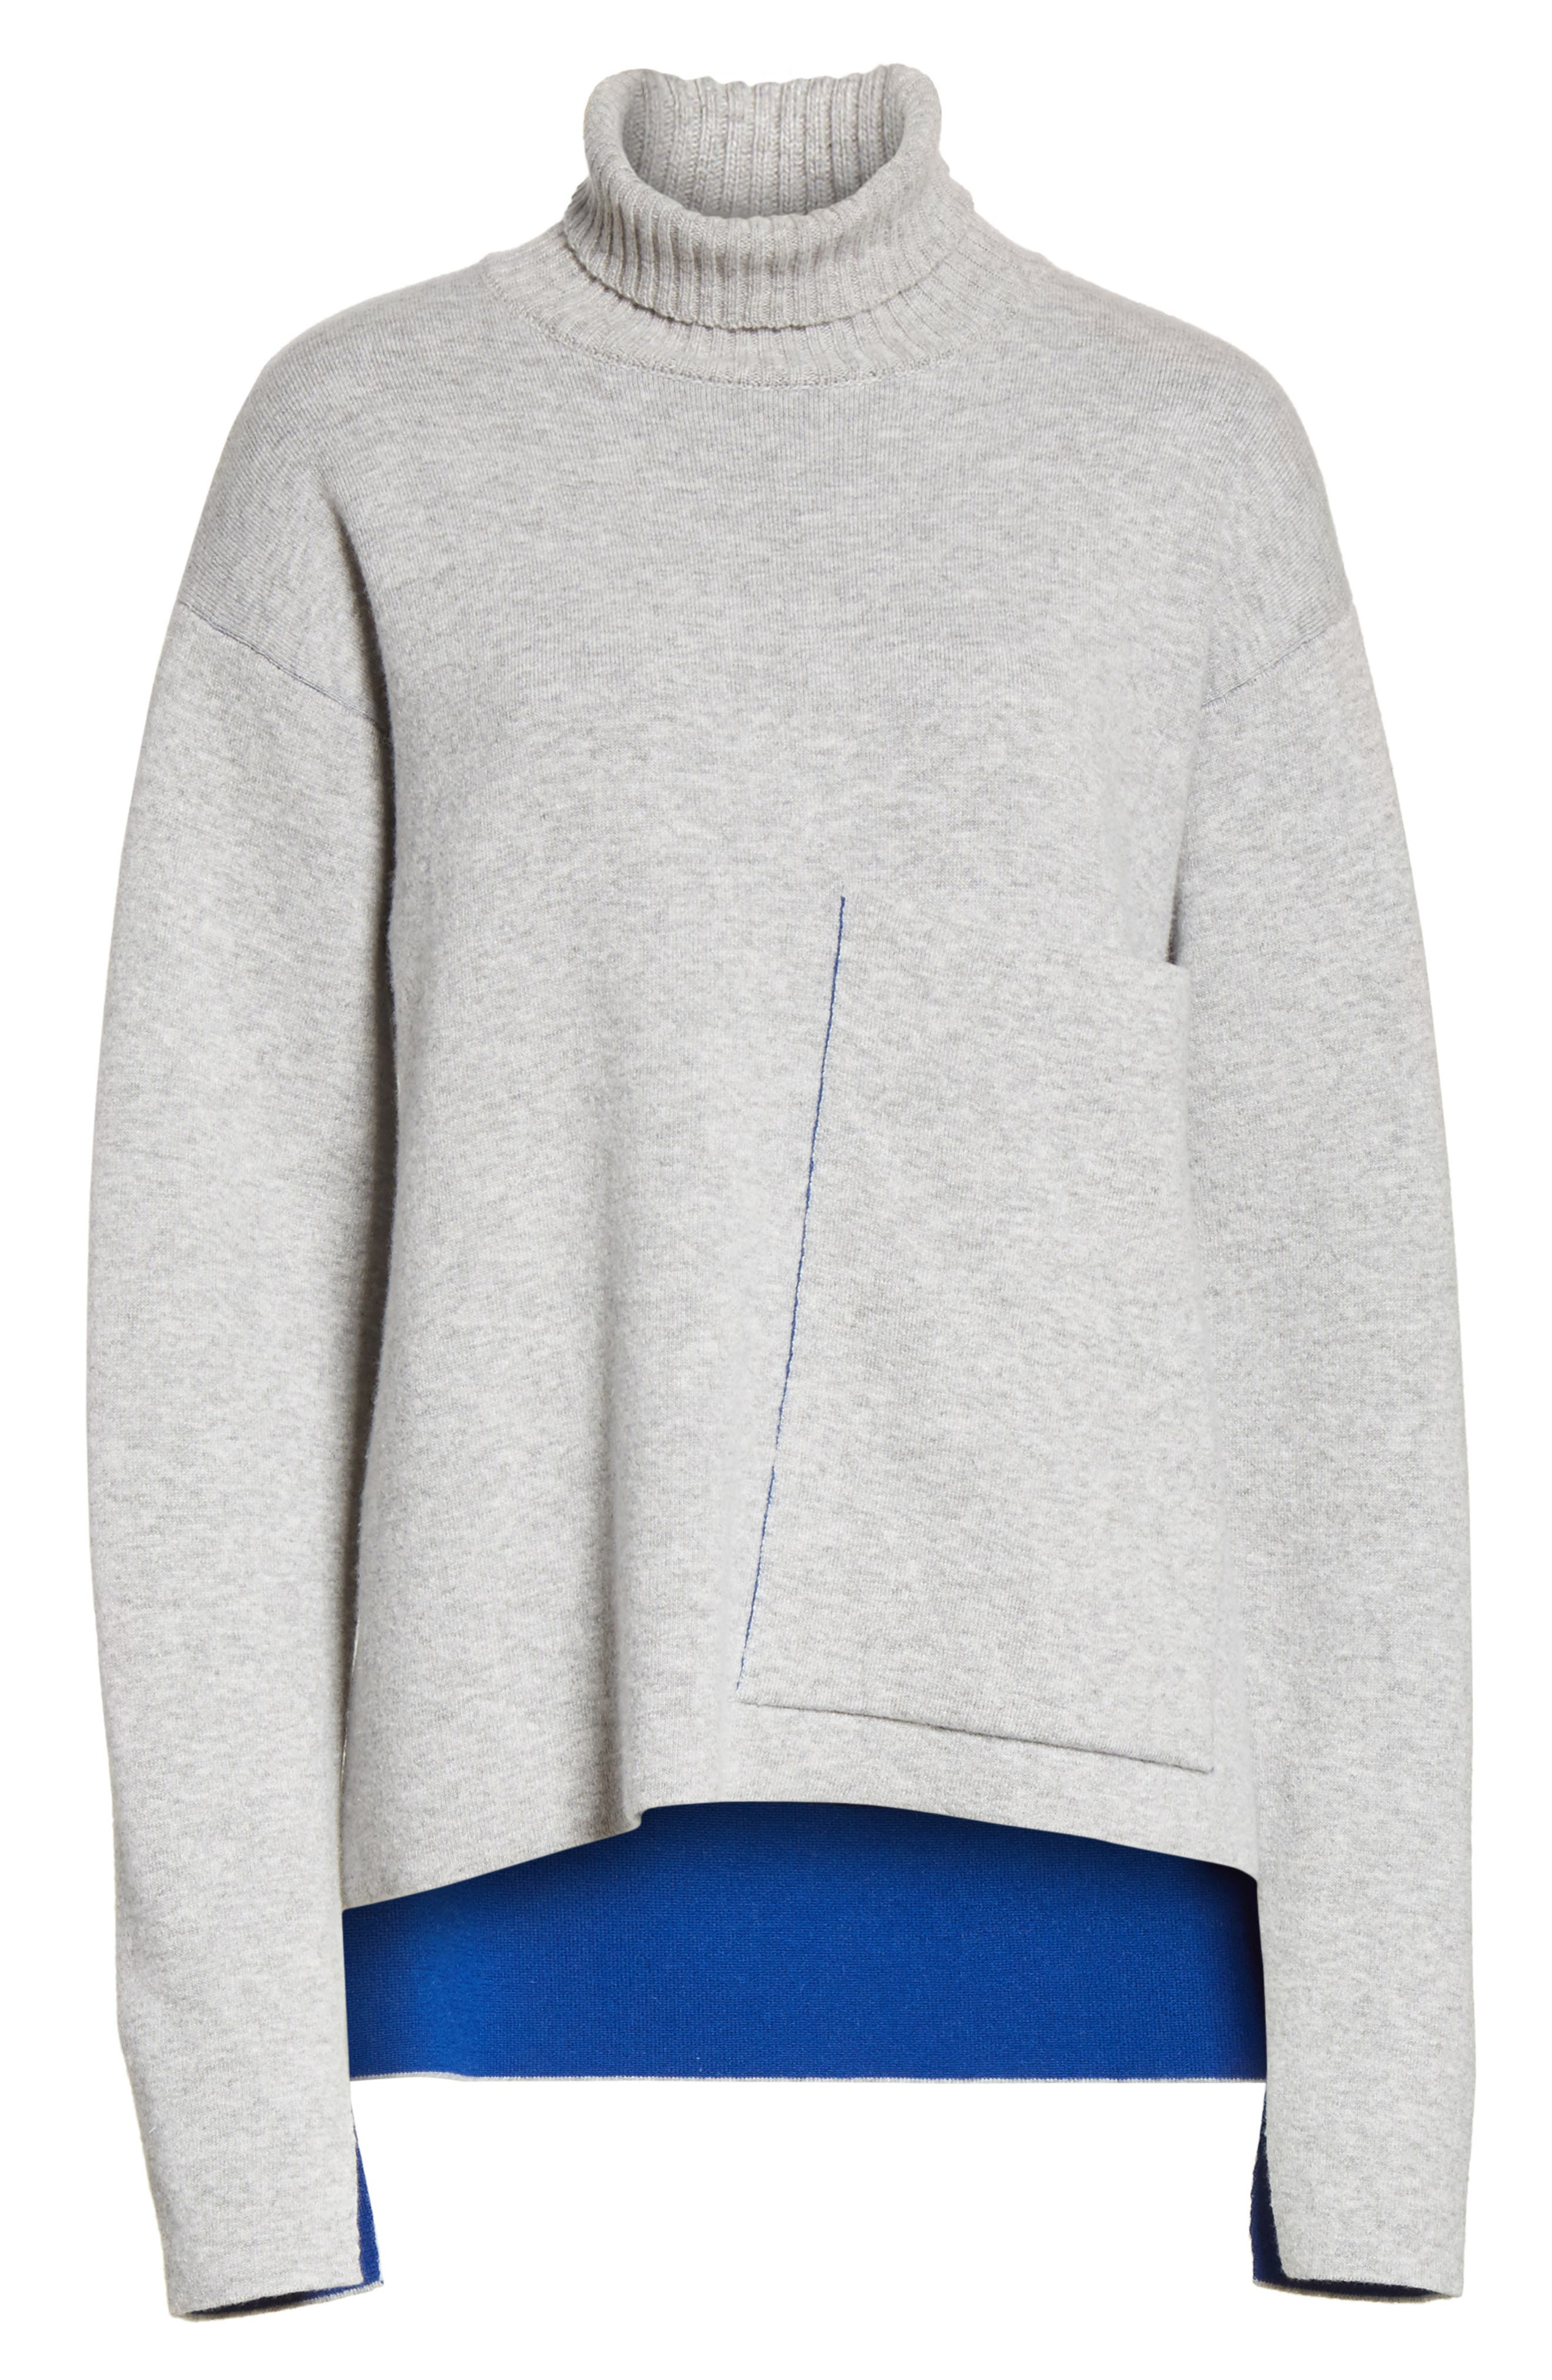 Double-Face Wool Blend Pocket Sweater,                             Alternate thumbnail 6, color,                             477